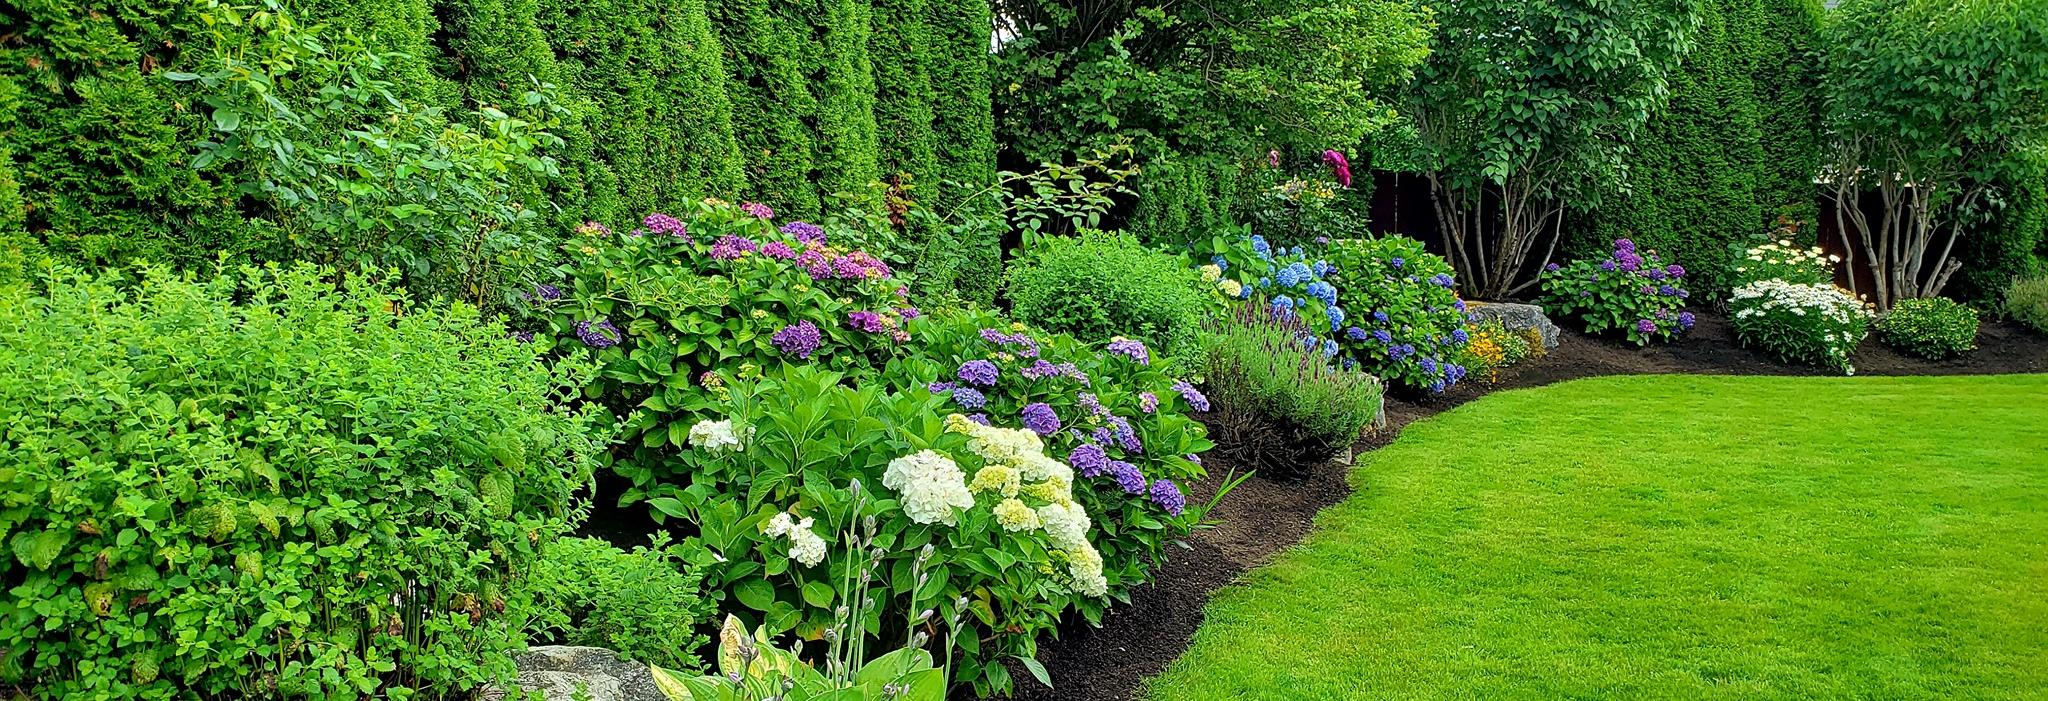 Tyler's Lawn Salon in Everett, WA banner image - landscapers in King County and Snohomish County